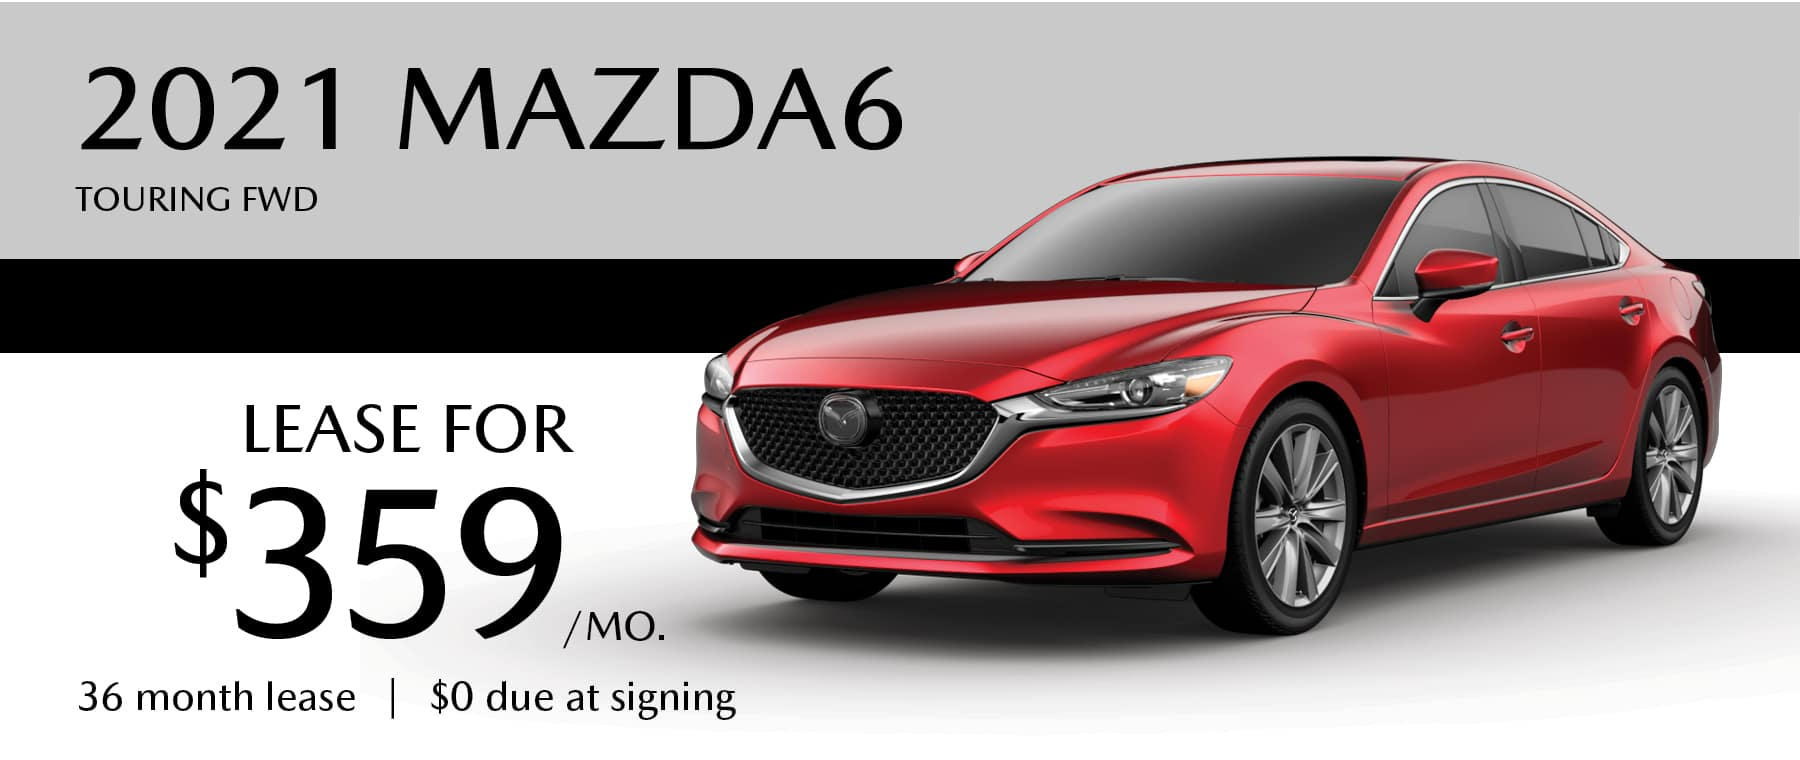 Lease for $359/month for 36 months with $0 due at signing!